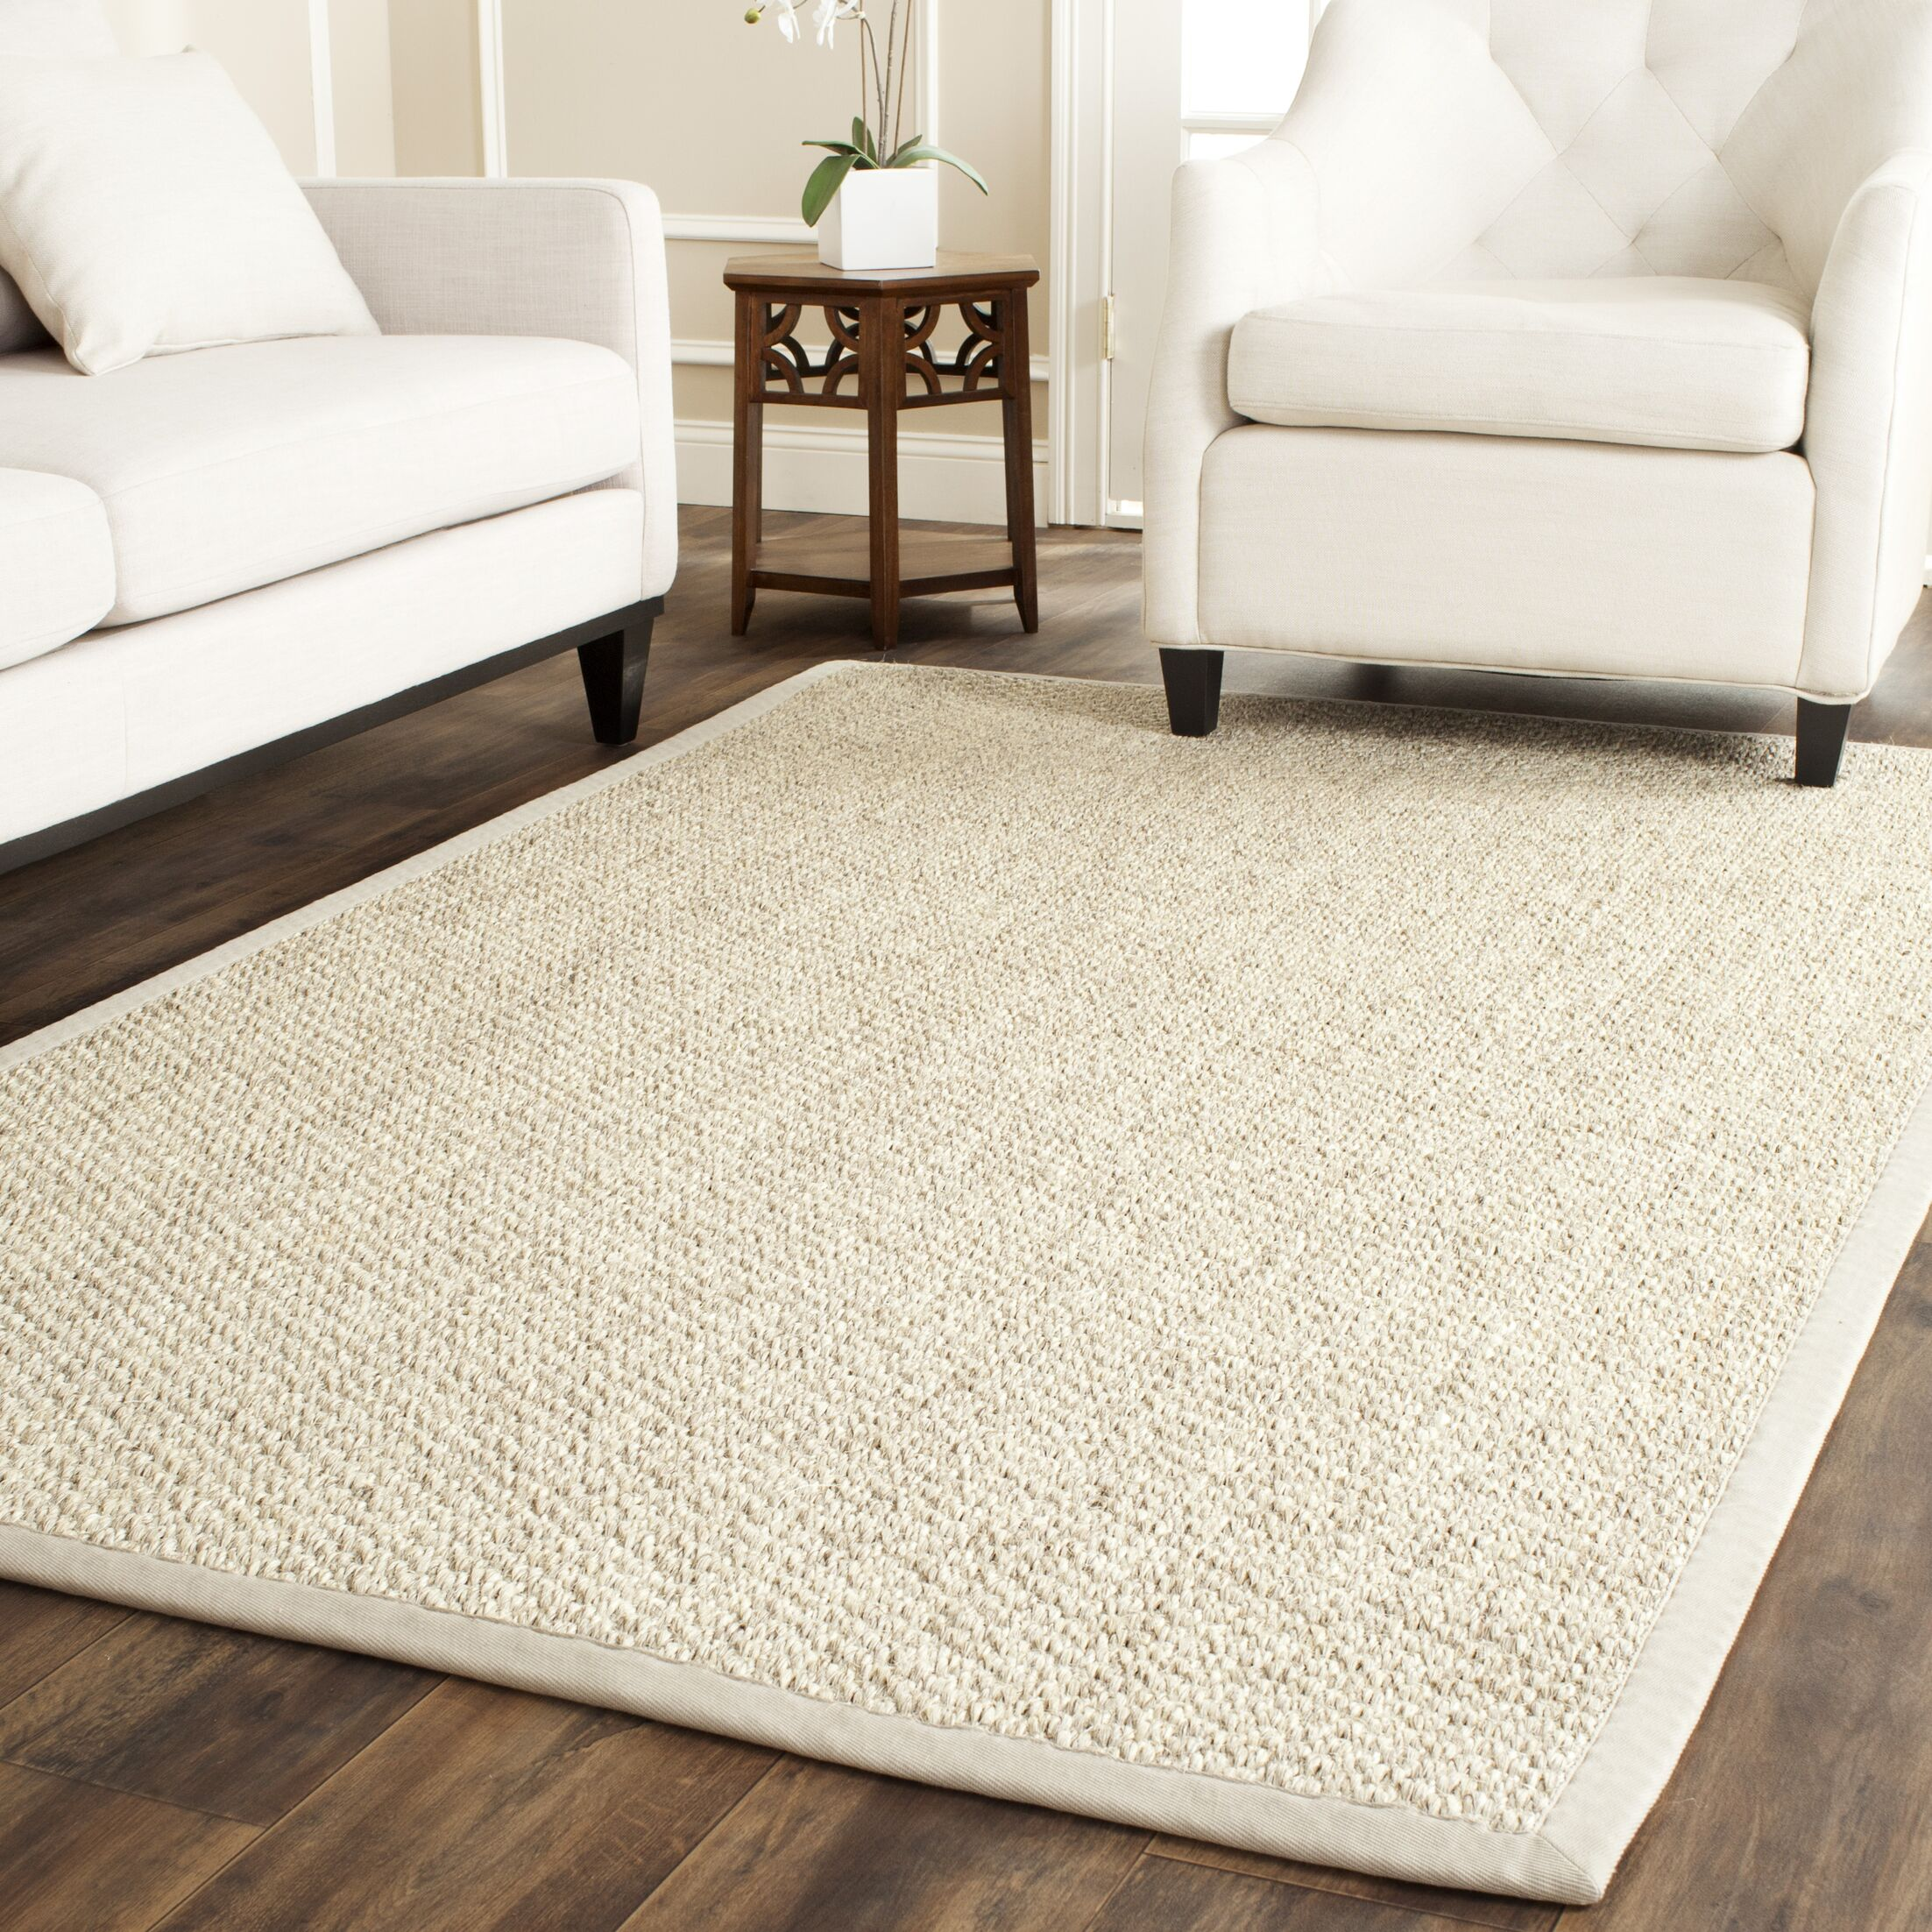 Richmond Faux Leather Brown Area Rug Rug Size: Rectangle 4' x 6'